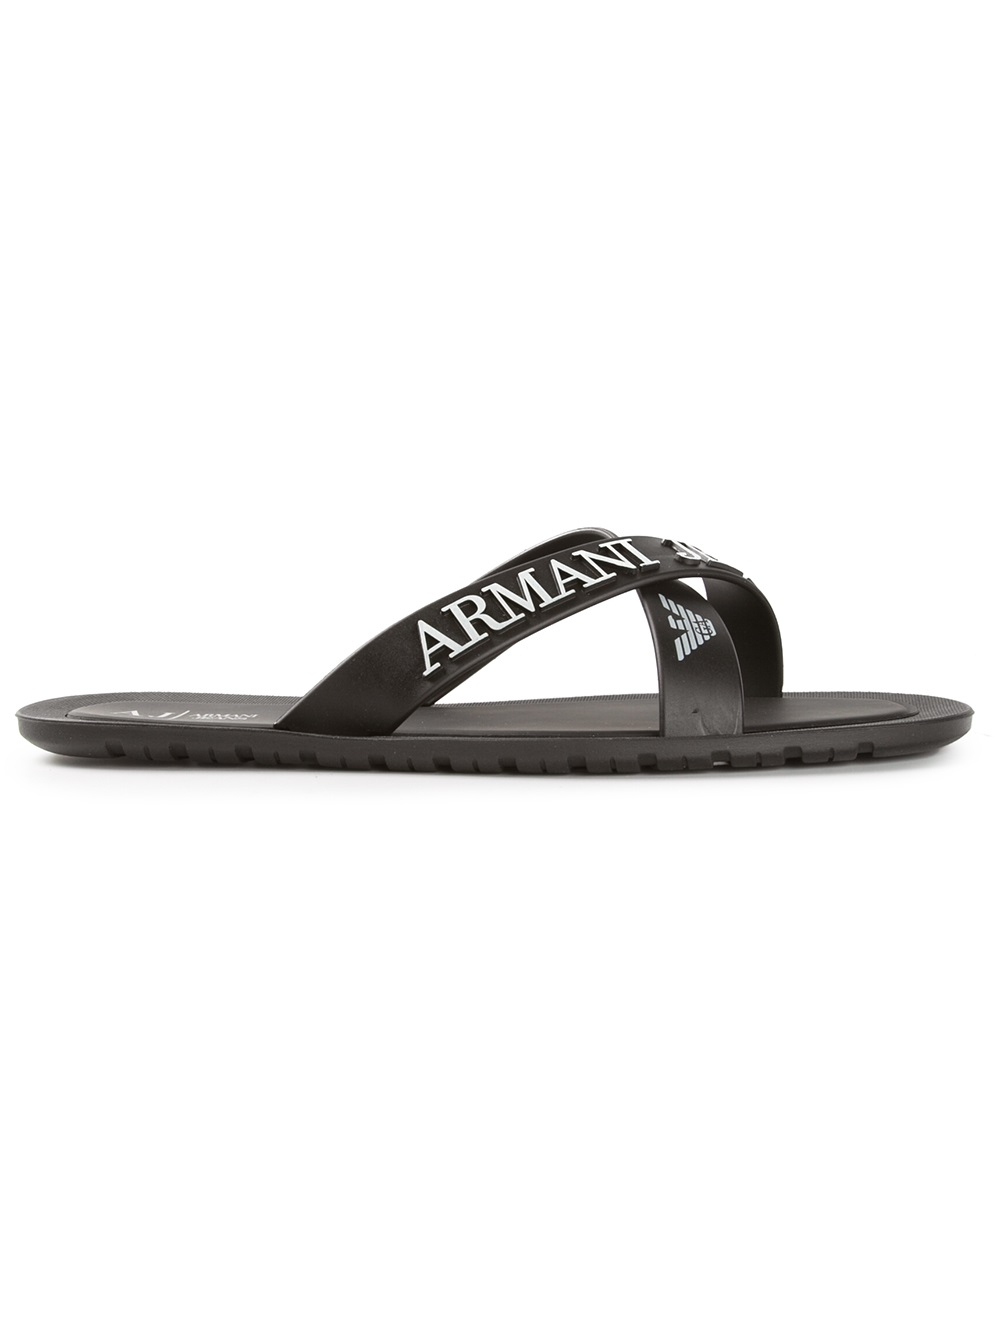 524d08a46460 Lyst - Armani Jeans Crossover Sandals in Black for Men